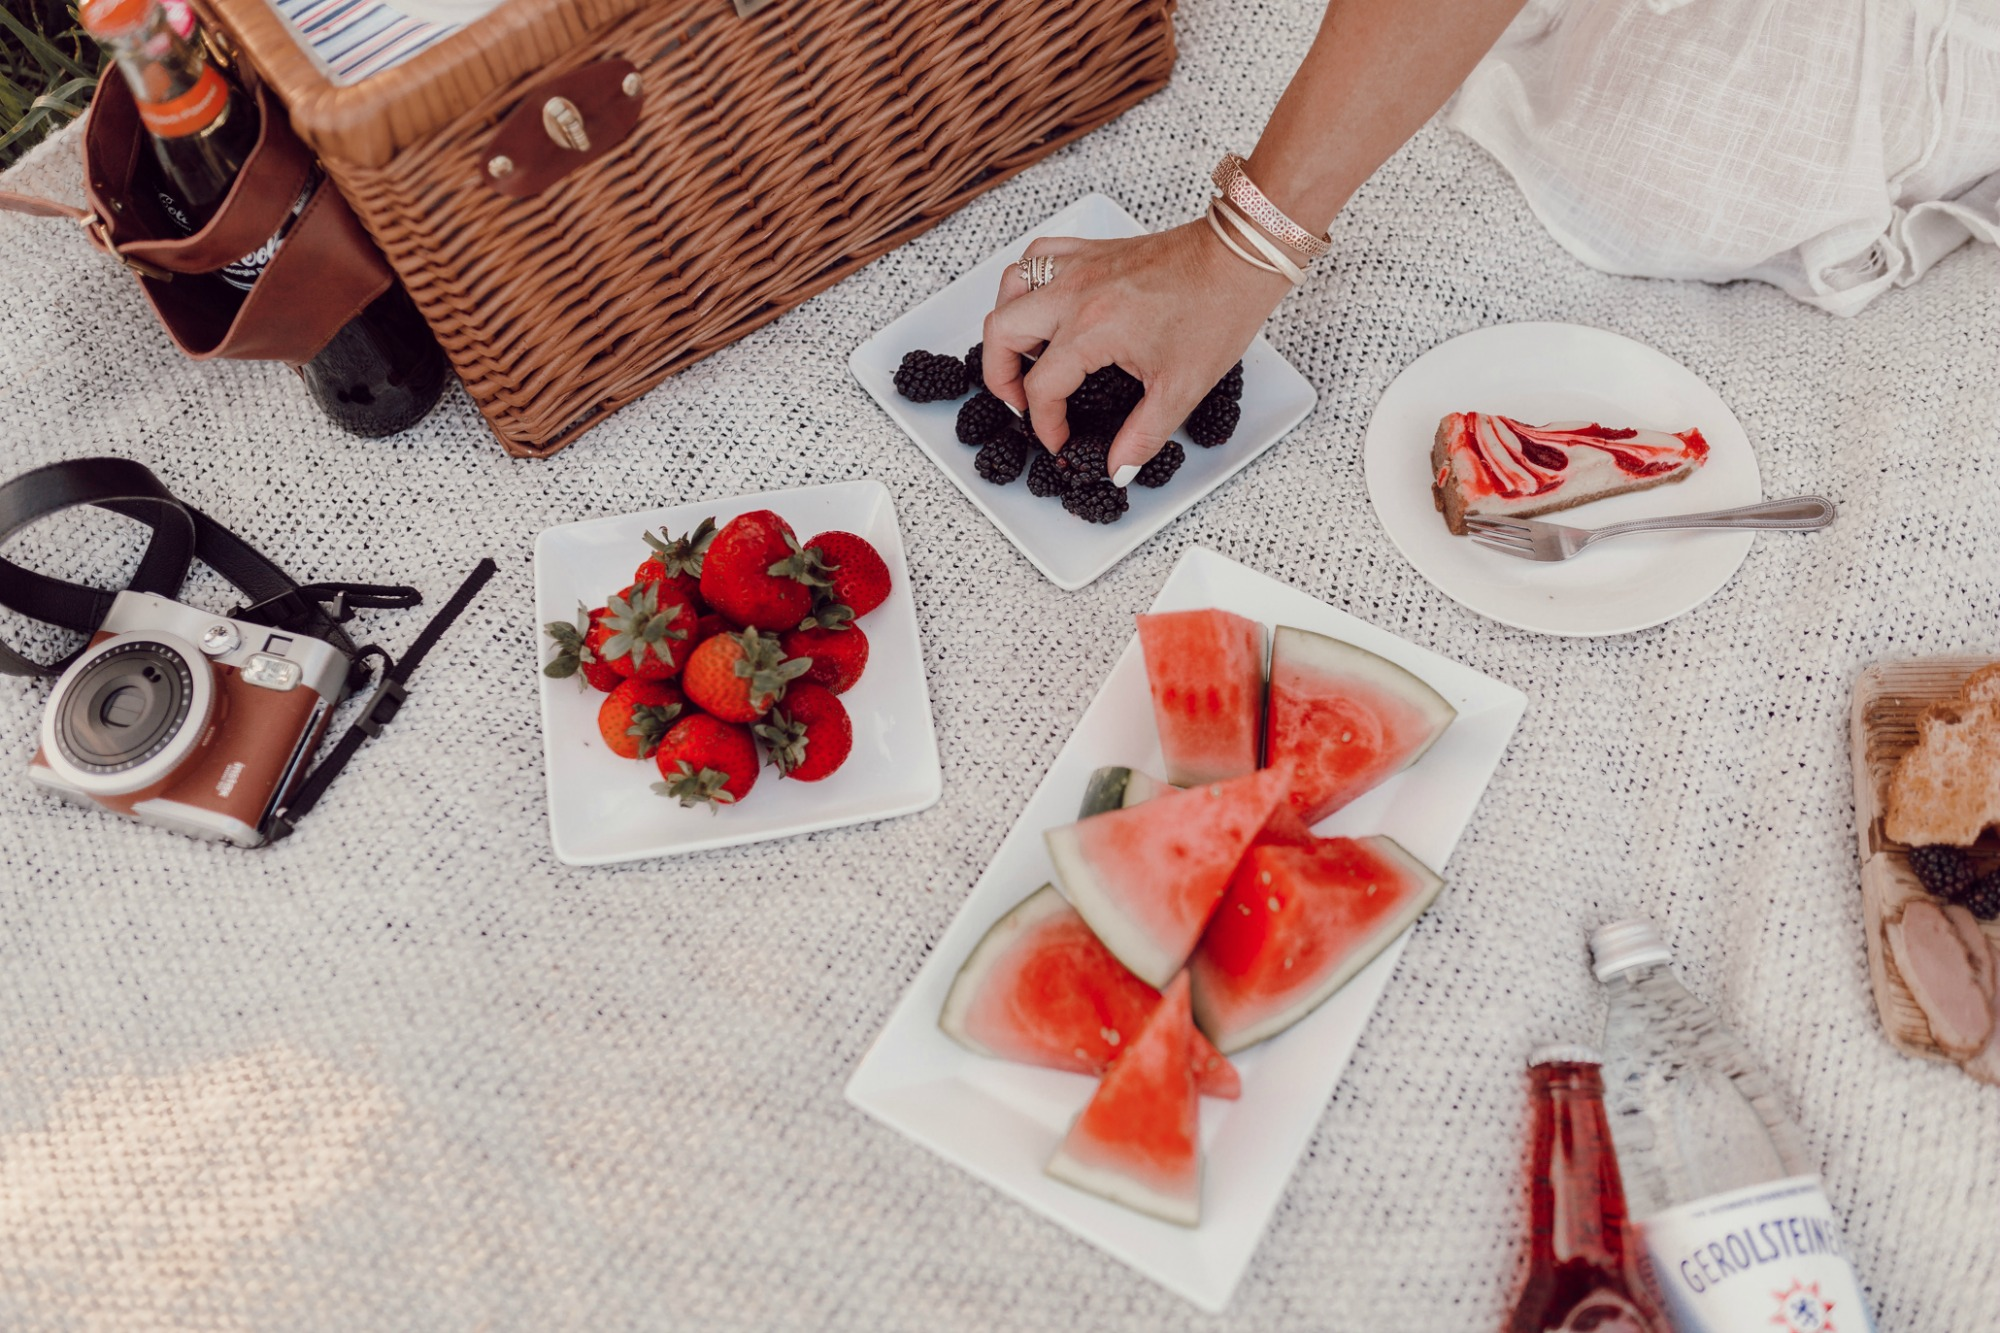 Simple ideas for a Labor Day picnic on JanuaryHart.com